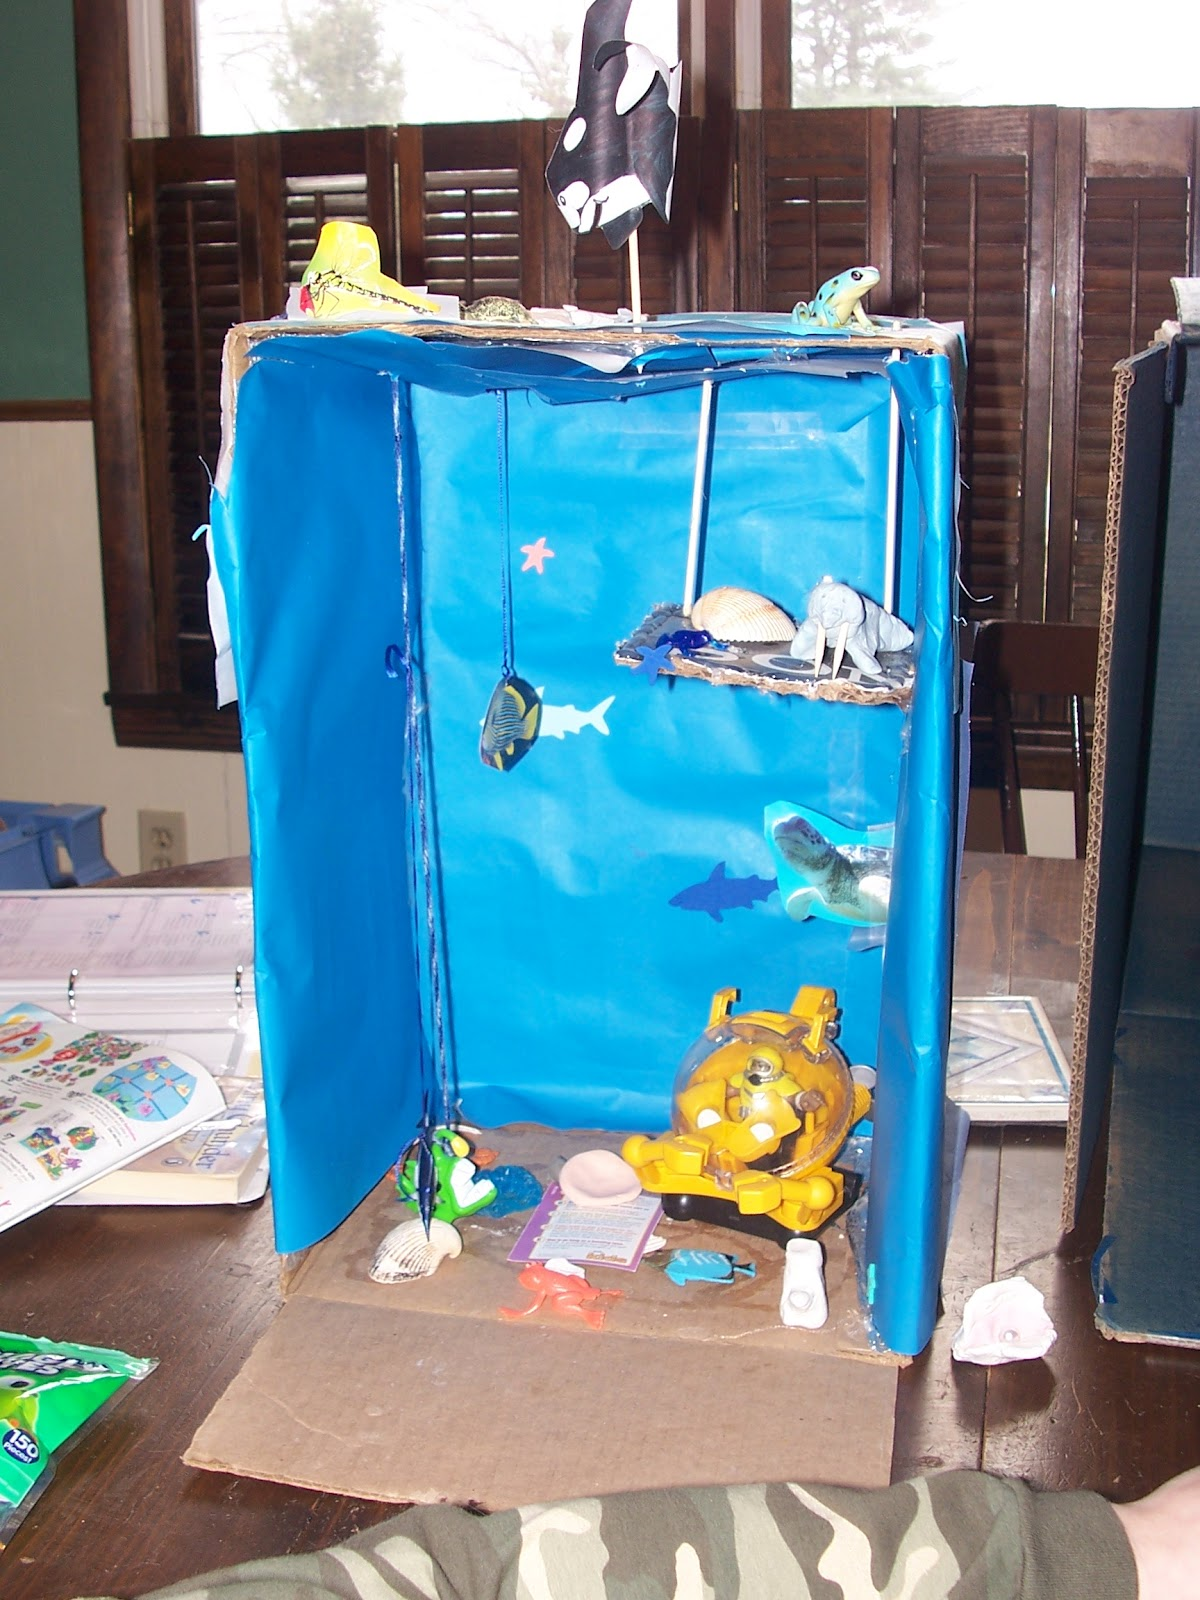 Kitchen Diorama Made Of Cereal Box: MuchLikeHippies: Ocean Boxes